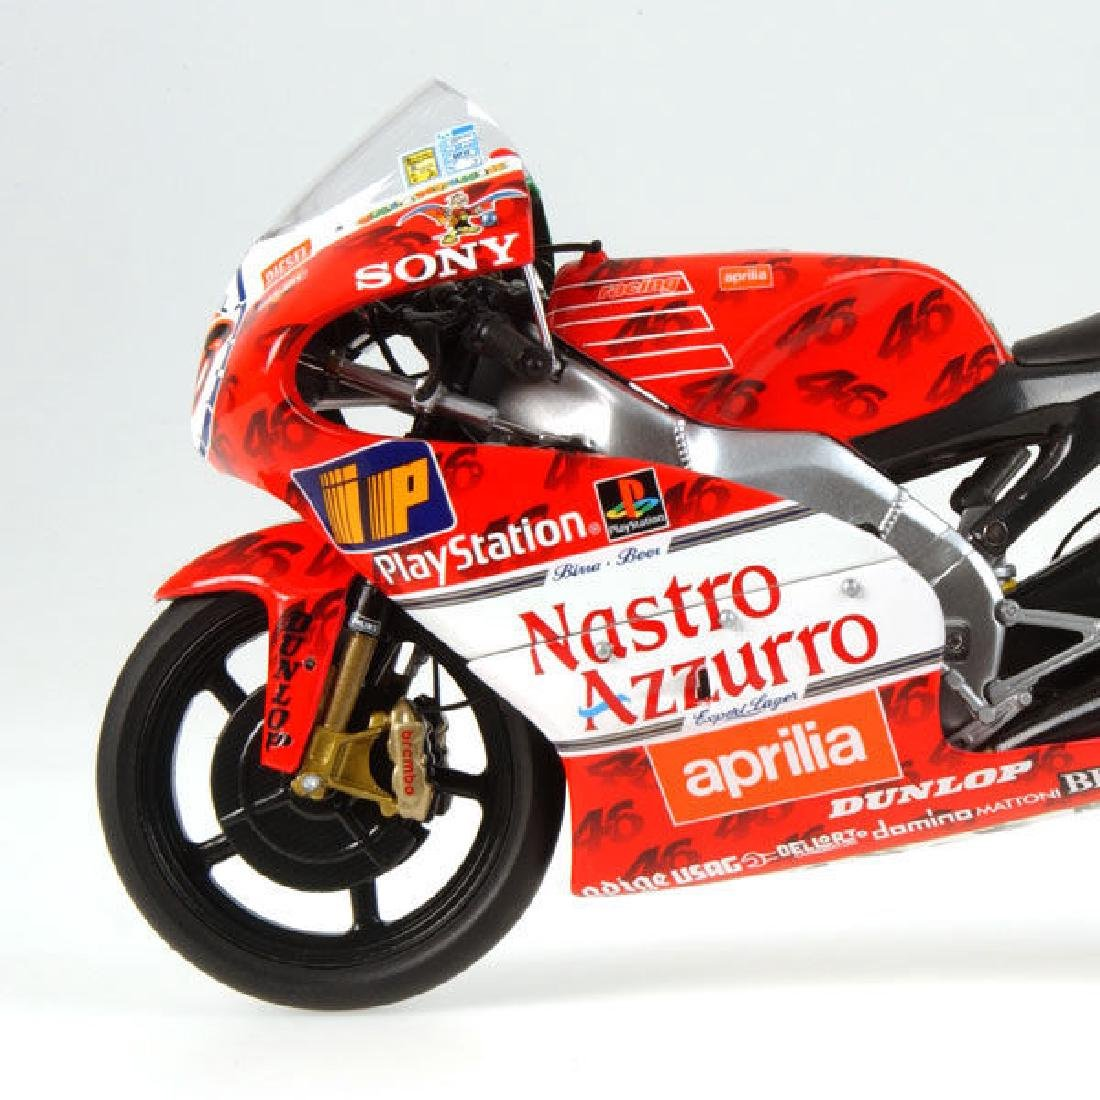 Minichamps Scale 1:12 Aprilia Team Aprilia Grand Prix - 5